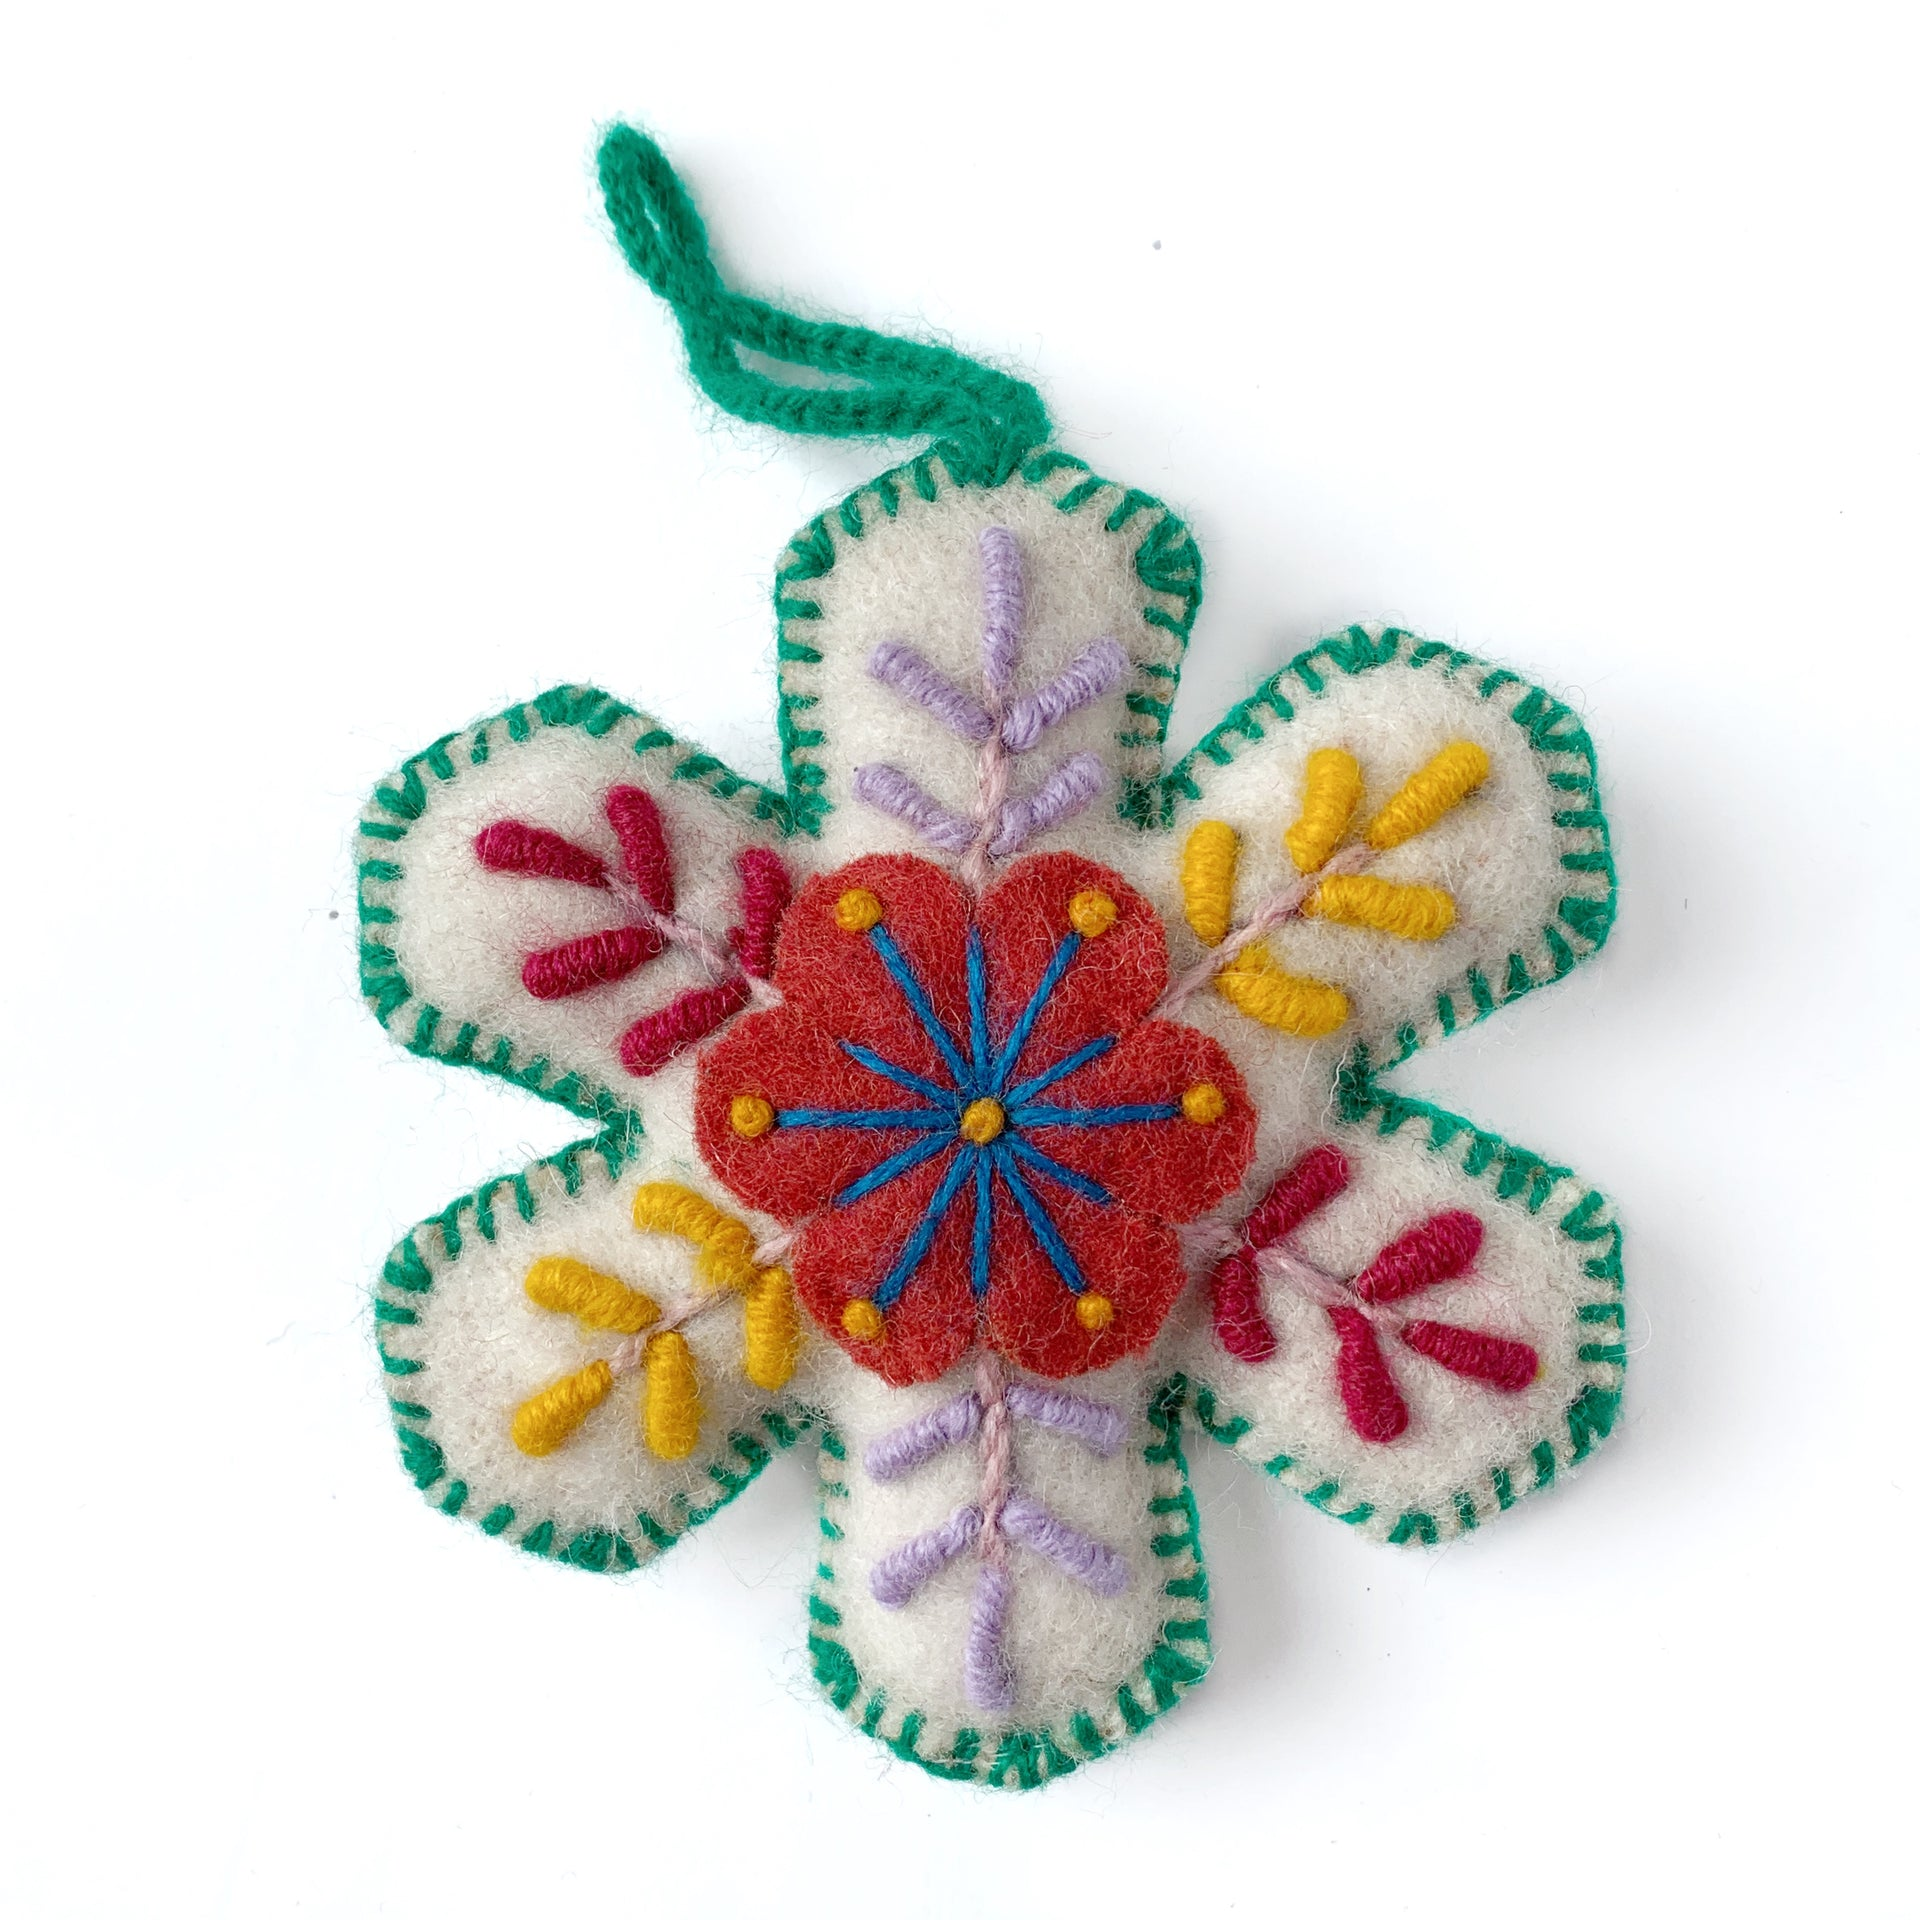 Snowflake, Embroidered Wool Ornament Variety 12 Pack